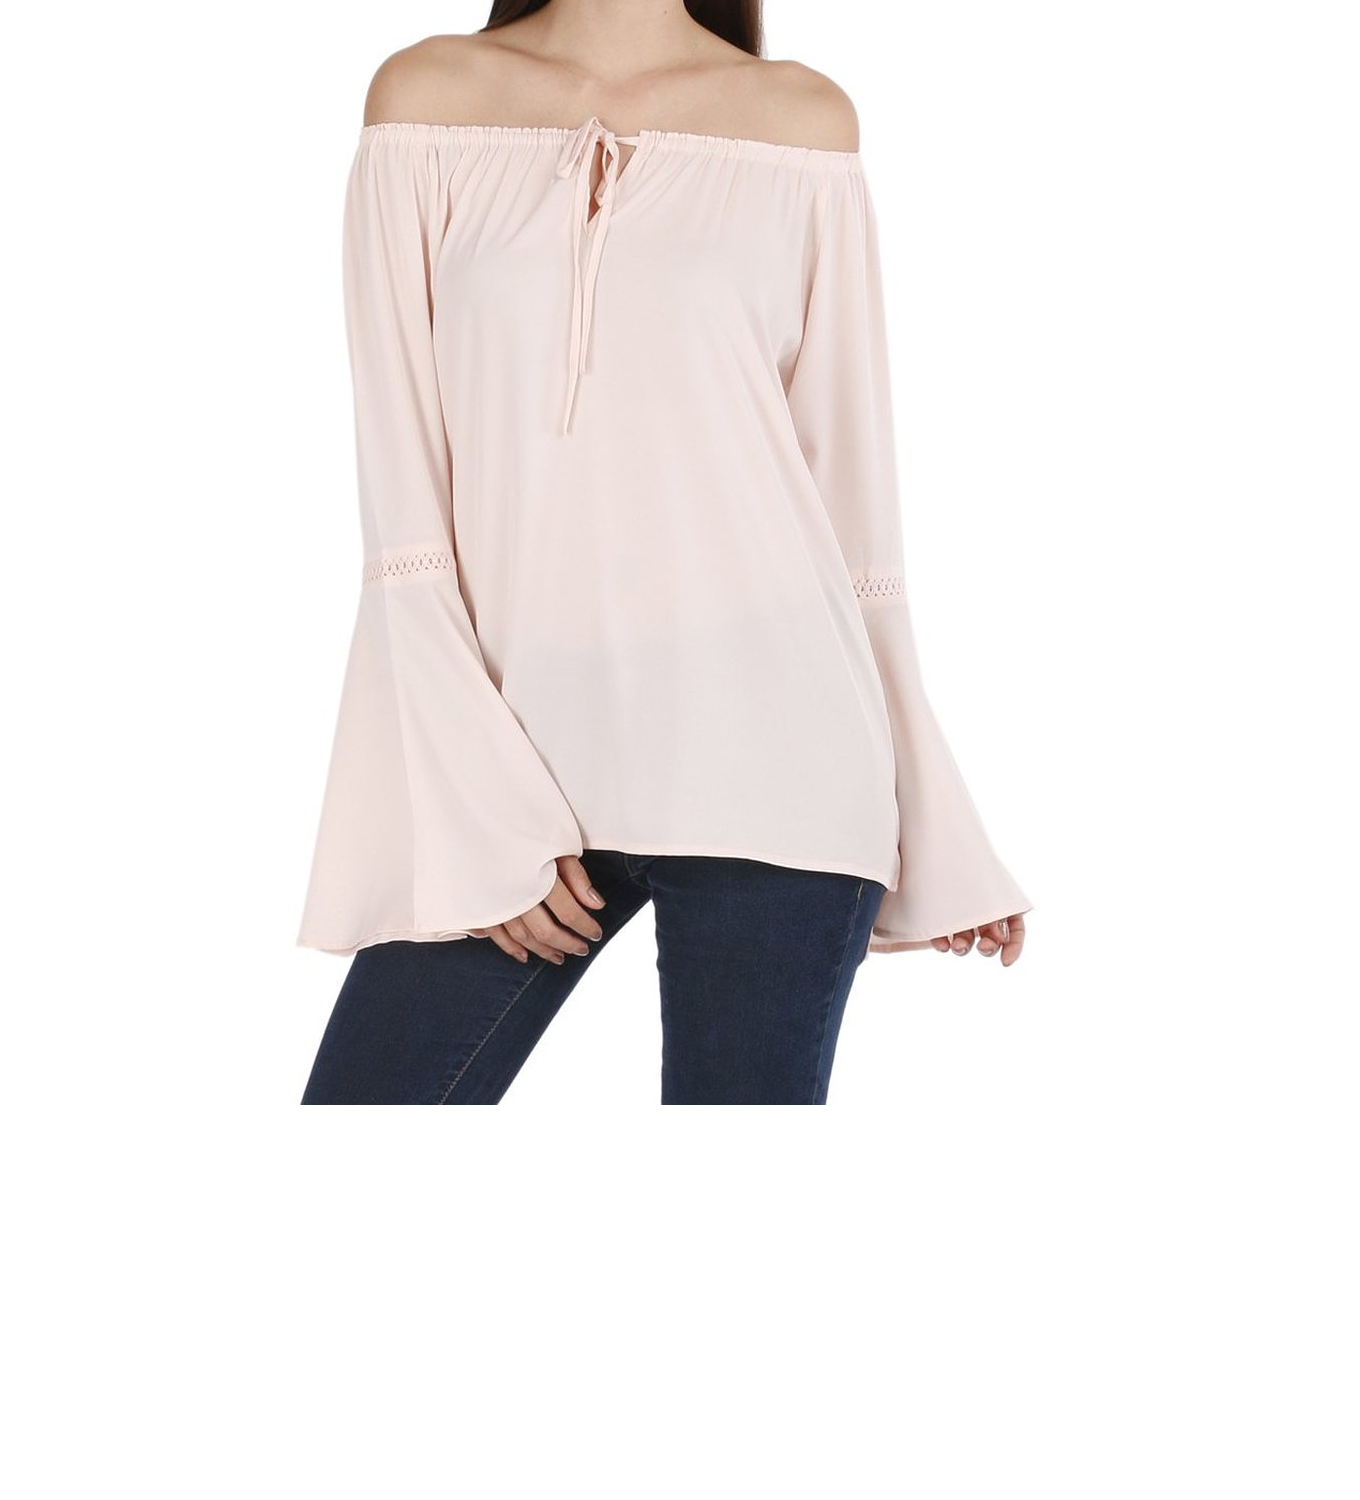 Lemon Chillo Pink Poly Crepe Solid Top for Women